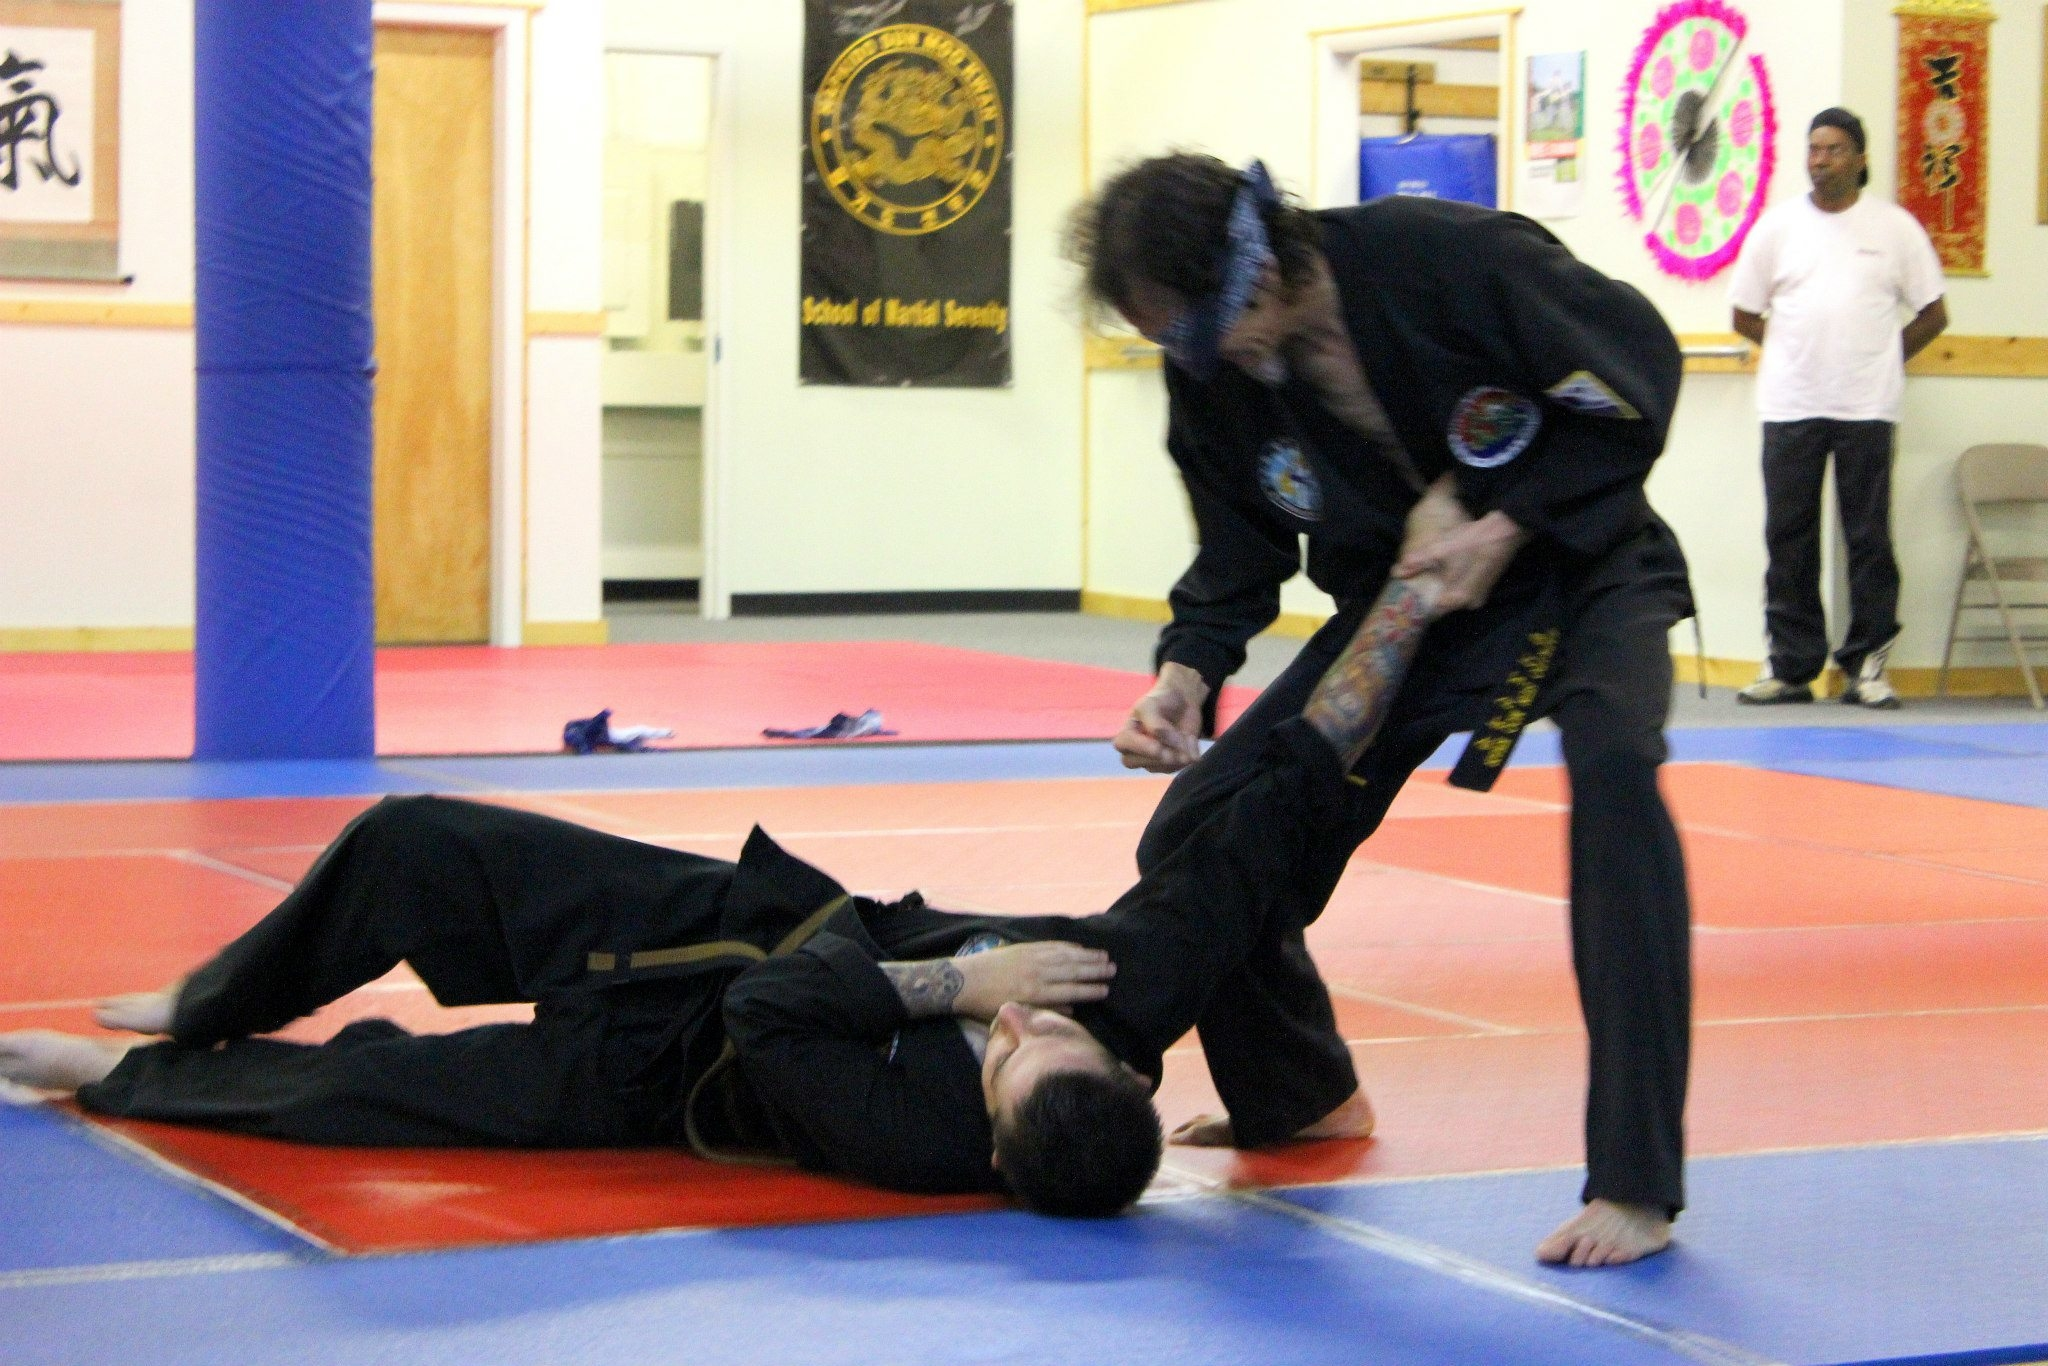 Decatur Martial Arts Academy image 6